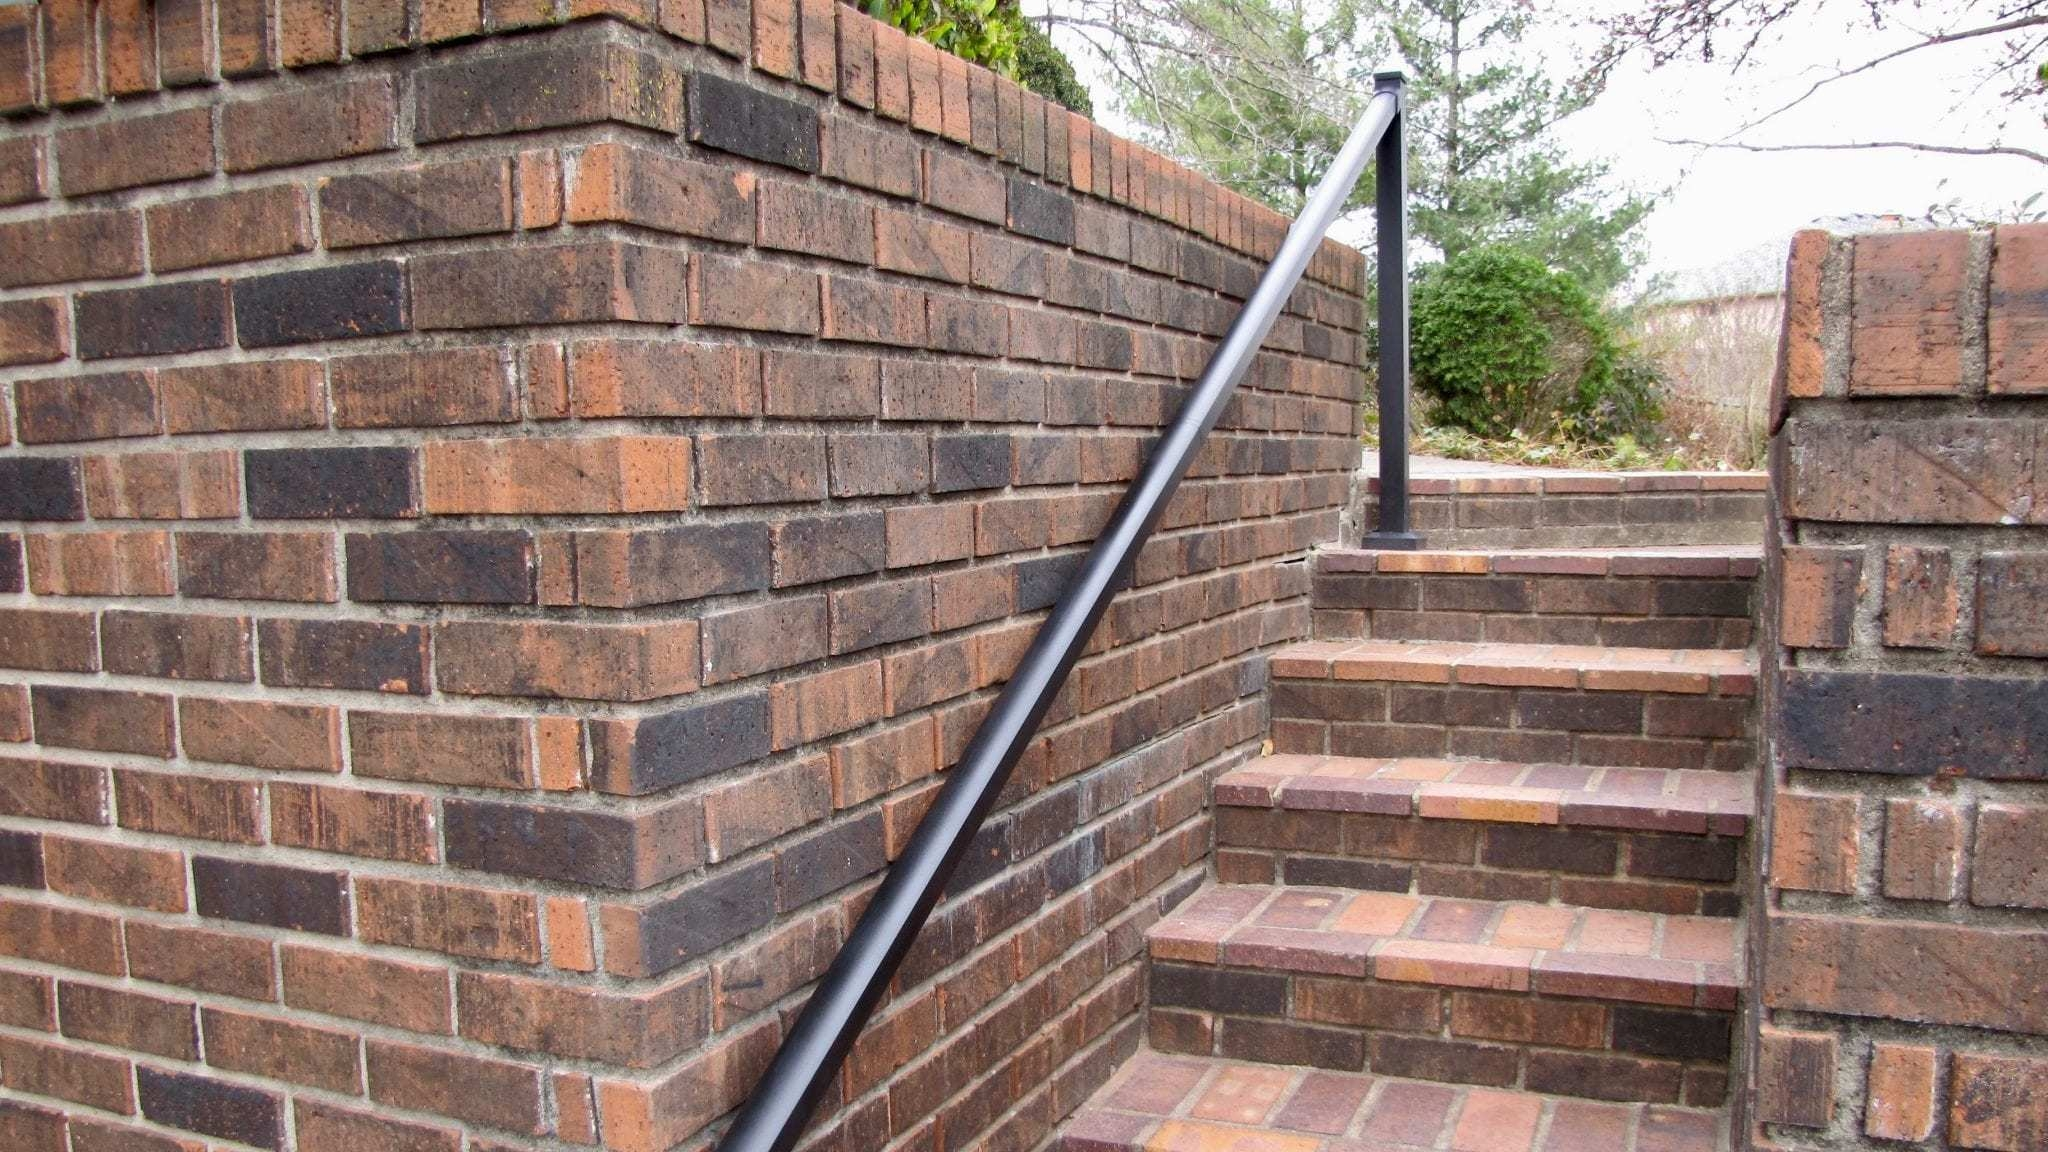 How To Treat Slippery Aluminum Handrails Ahd   Aluminum Steps With Handrail   Boat Dock   Wheelchair Ramp   Stair Treads   Folding   Stair System